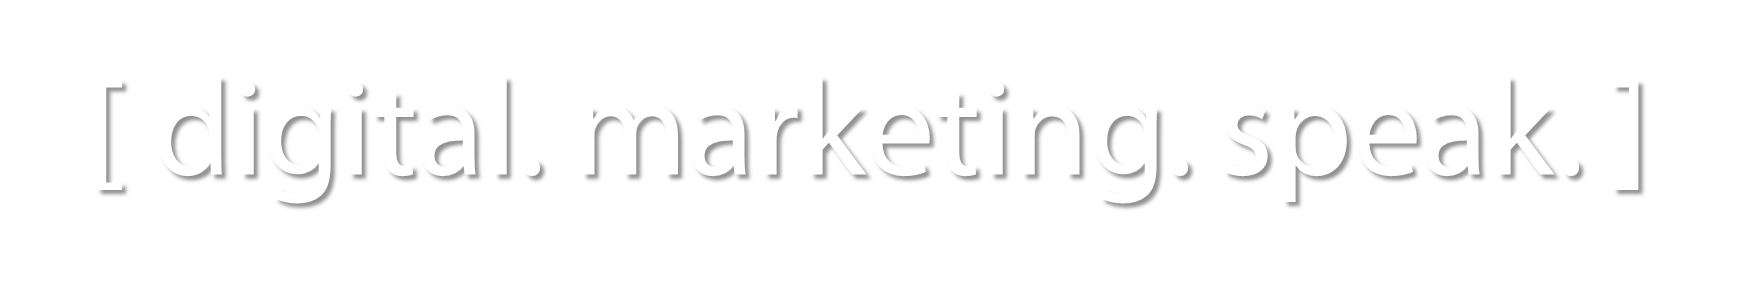 [ digital. marketing. speak. ]